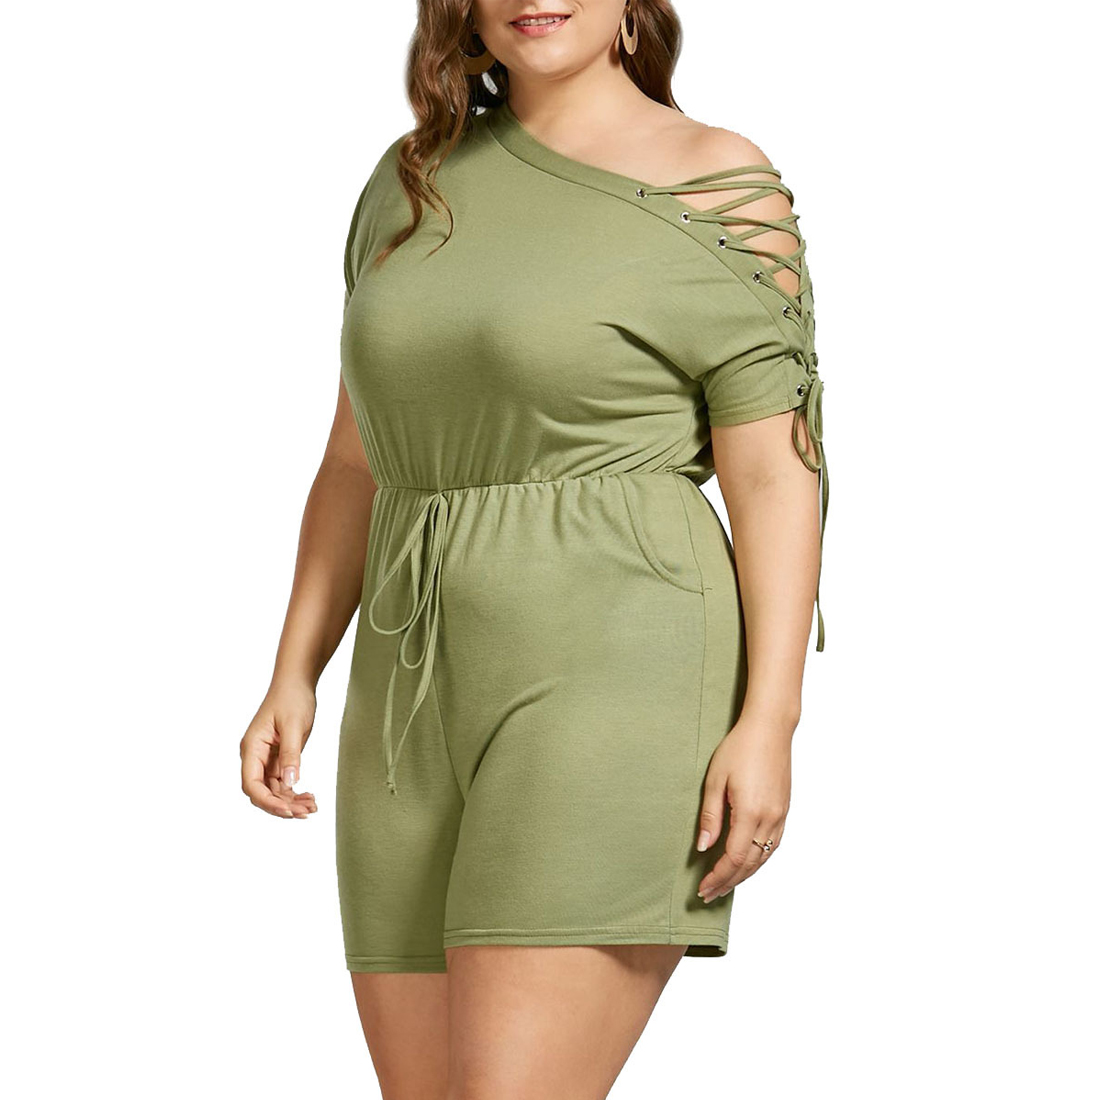 YJSFG HOUSE Fashion Women Large Plus Size 5XL Spring Playsuit Party Lace Up Jumpsuit Romper Trousers Shorts Bandage Green Hollow